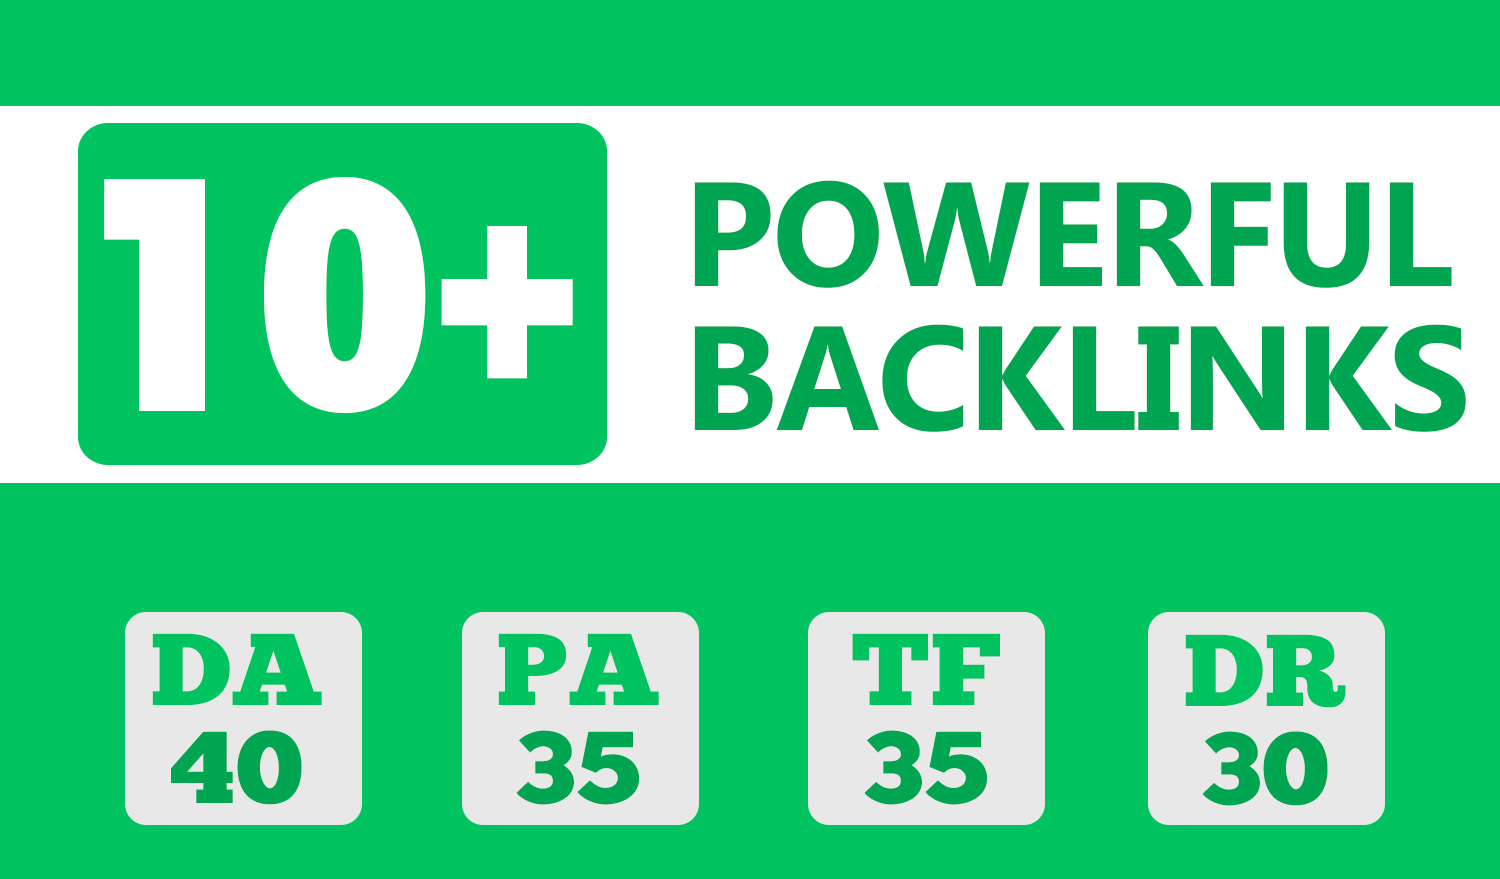 Provide 10 DA PA 40+ backlinks to Boost your Google Ranking